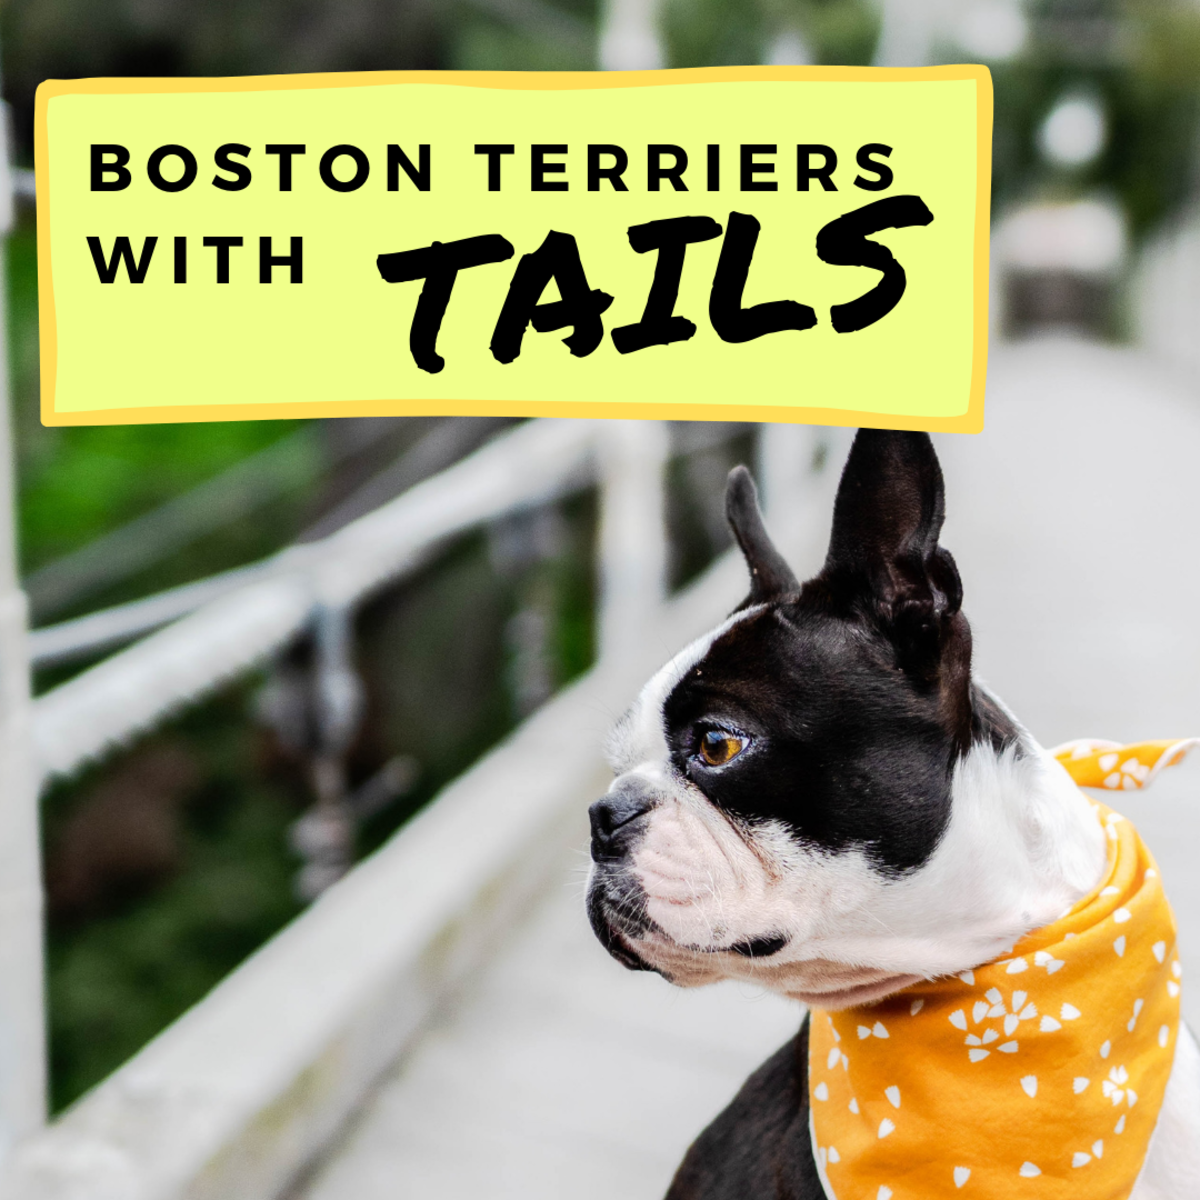 Do Boston Terriers Have Tails?